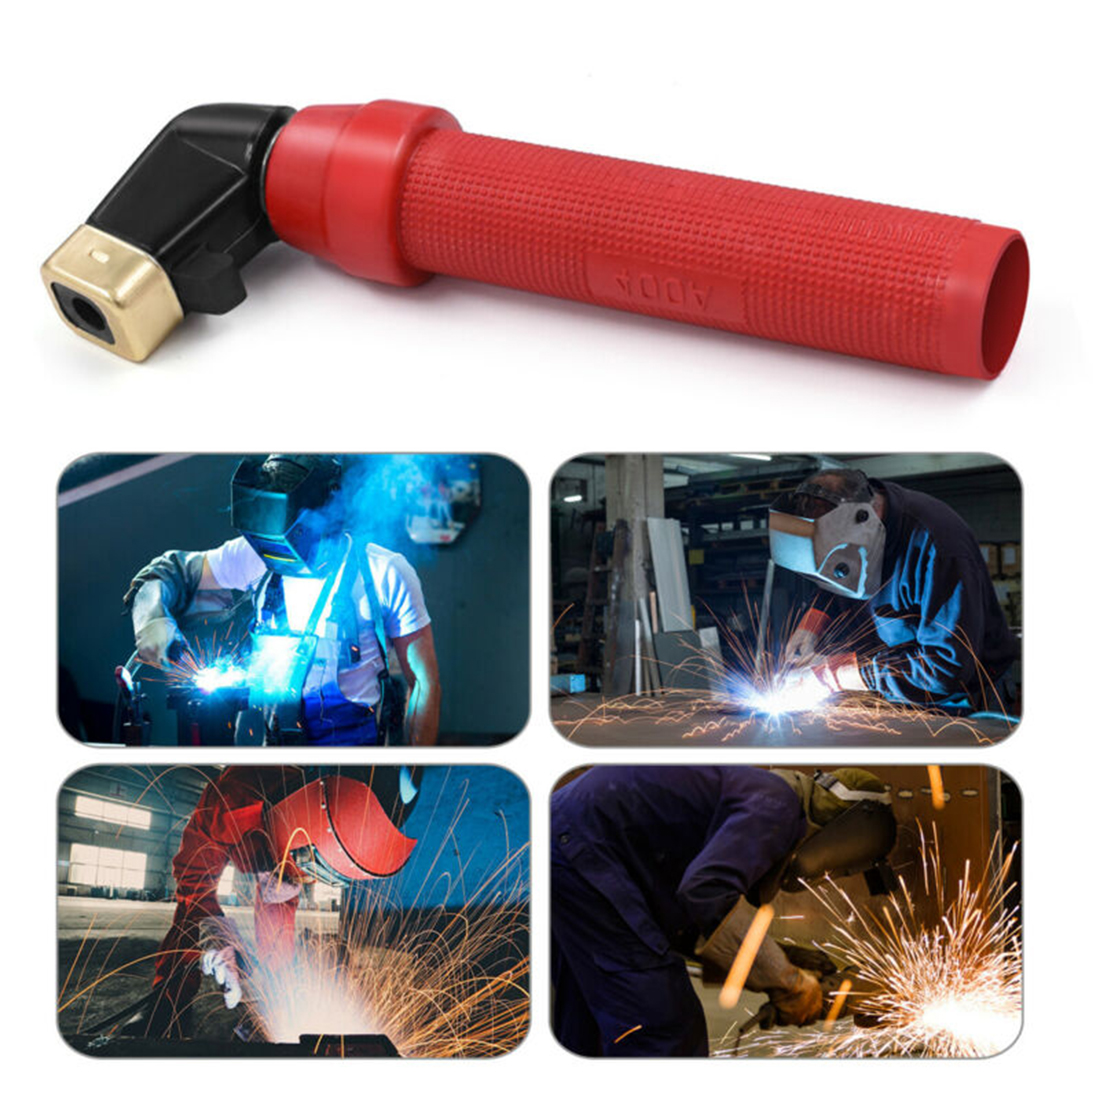 HITBOX 300A 400A Electrode Weld Holder MMA Welding Accessories ARC Welding Holders Tool Red 380V ARC Welding Holder